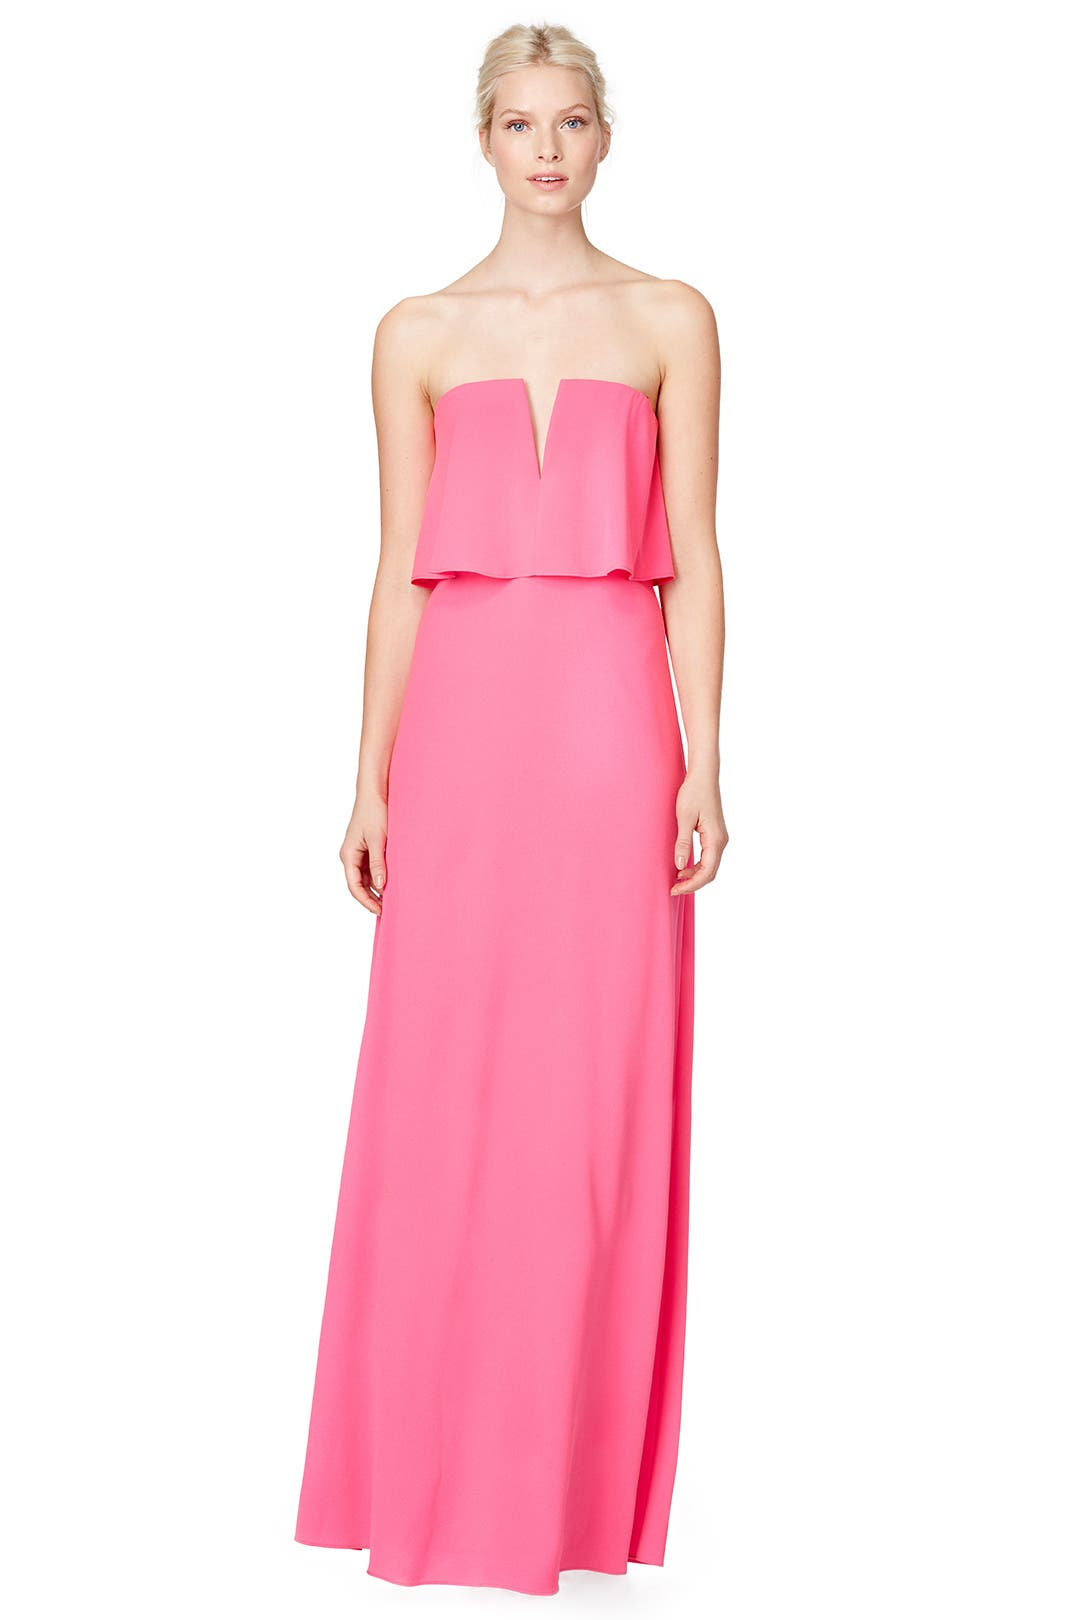 Alyse Gown by BCBGMAXAZRIA for $118 | Rent the Runway